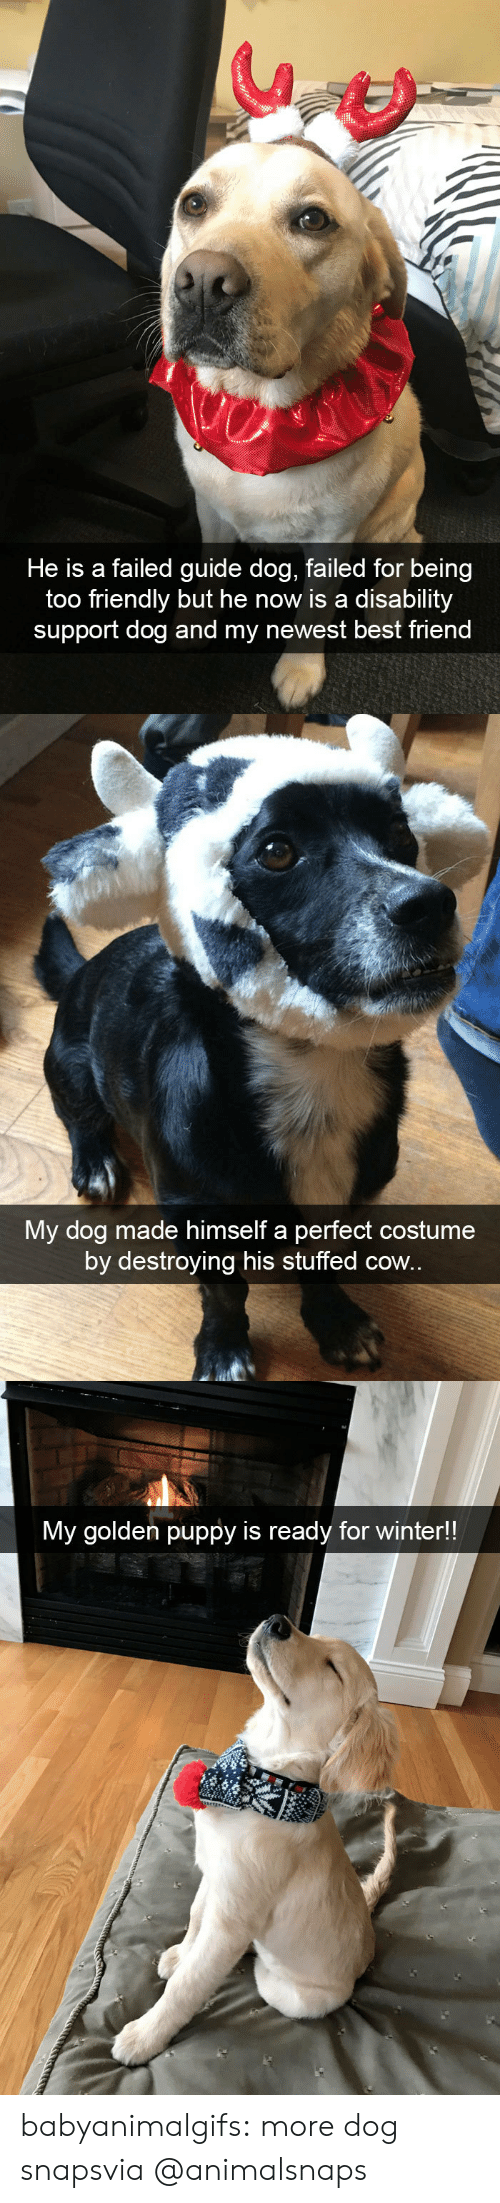 cow: He is a failed guide dog, failed for being  too friendly but he now is a disability  support dog and my newest best friend   My dog made himself a perfect costume  by destroying his stuffed cow.   My golden puppy is ready for winter!! babyanimalgifs:  more dog snapsvia @animalsnaps​